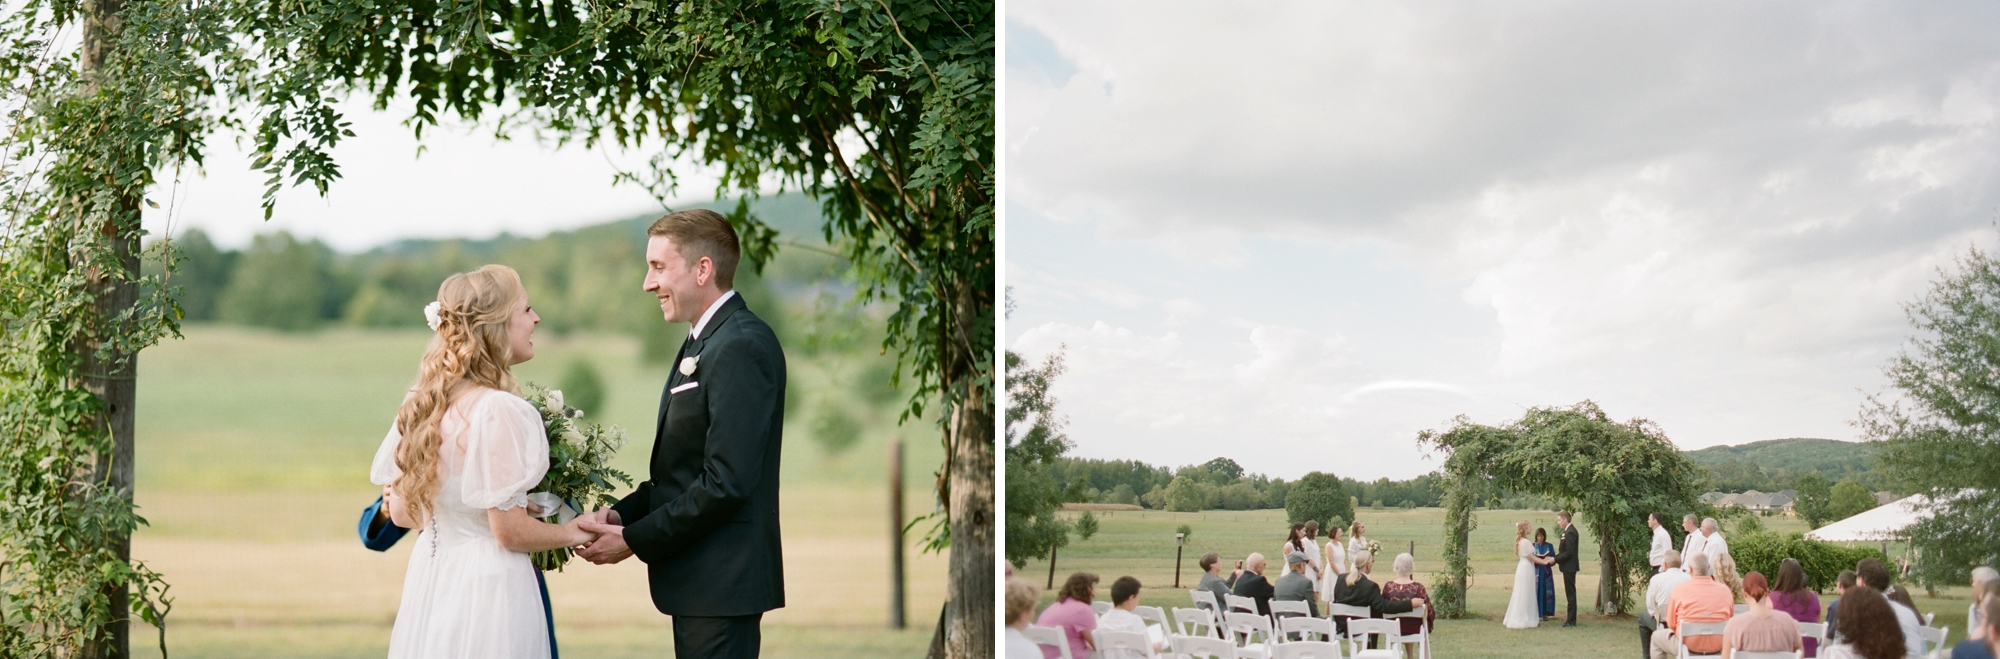 alabama-film-wedding-photographer_0014